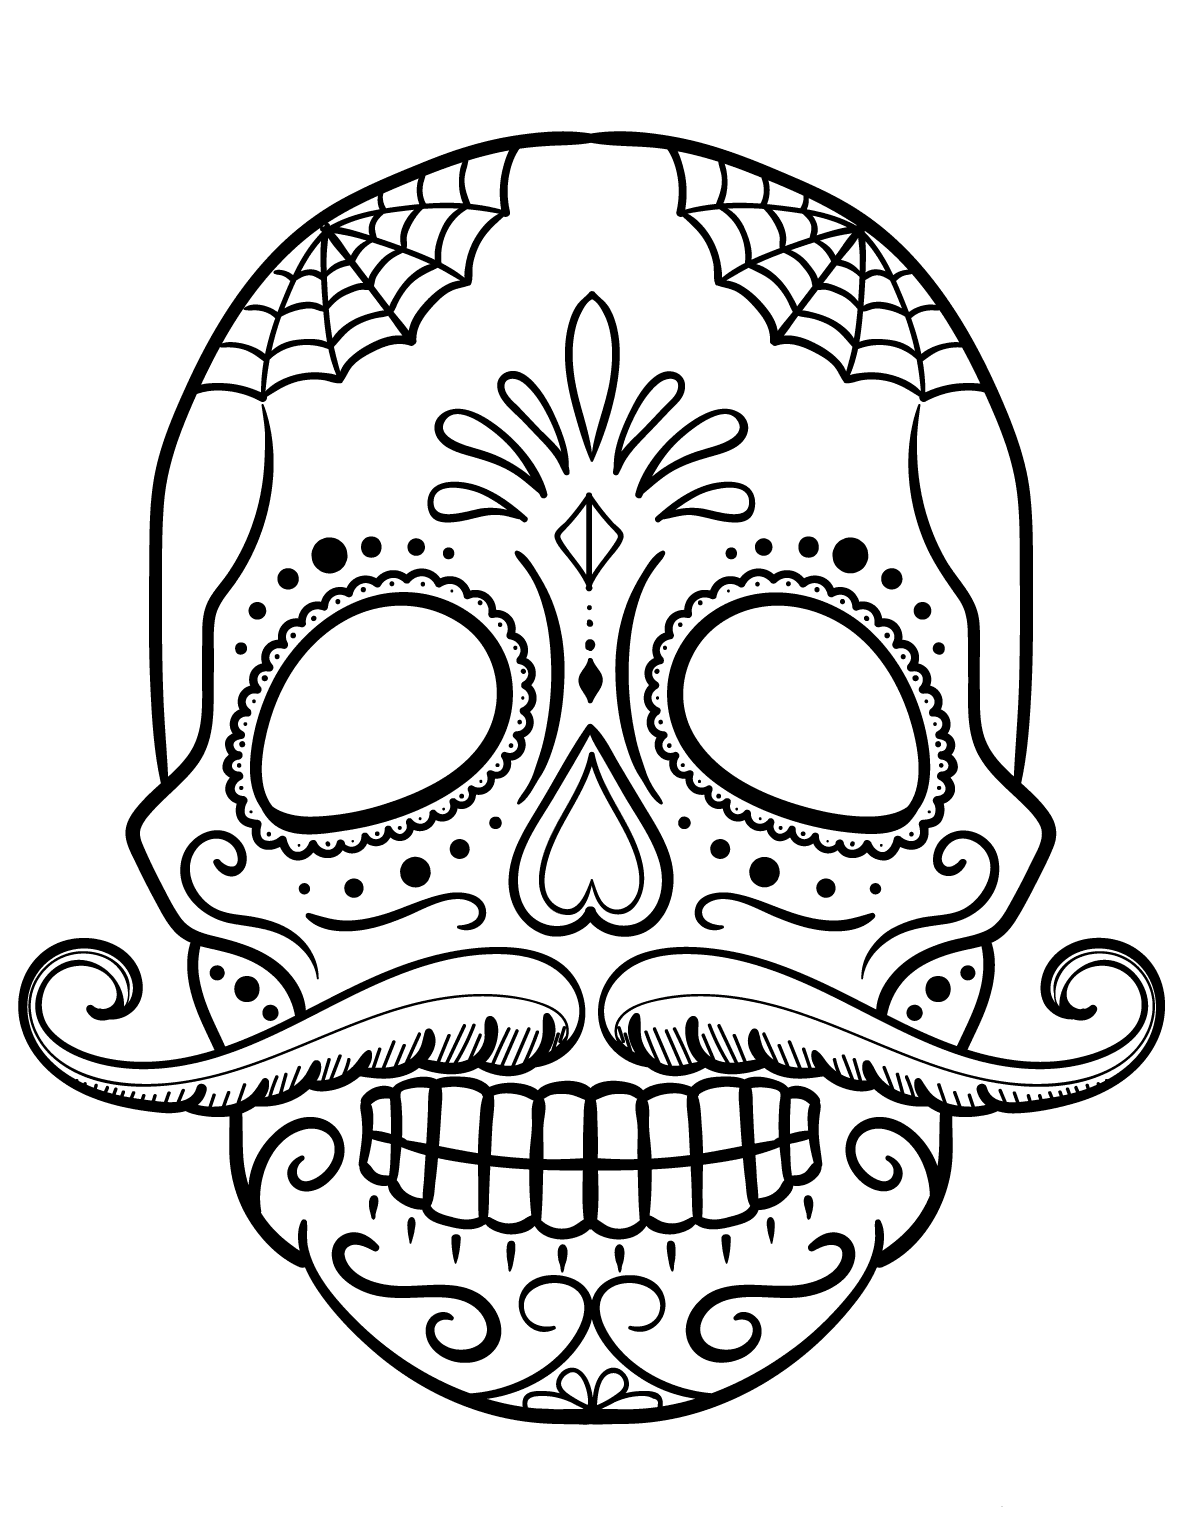 free printable sugar skull coloring pages day of the dead sugar skull coloring page free printable printable free pages skull coloring sugar